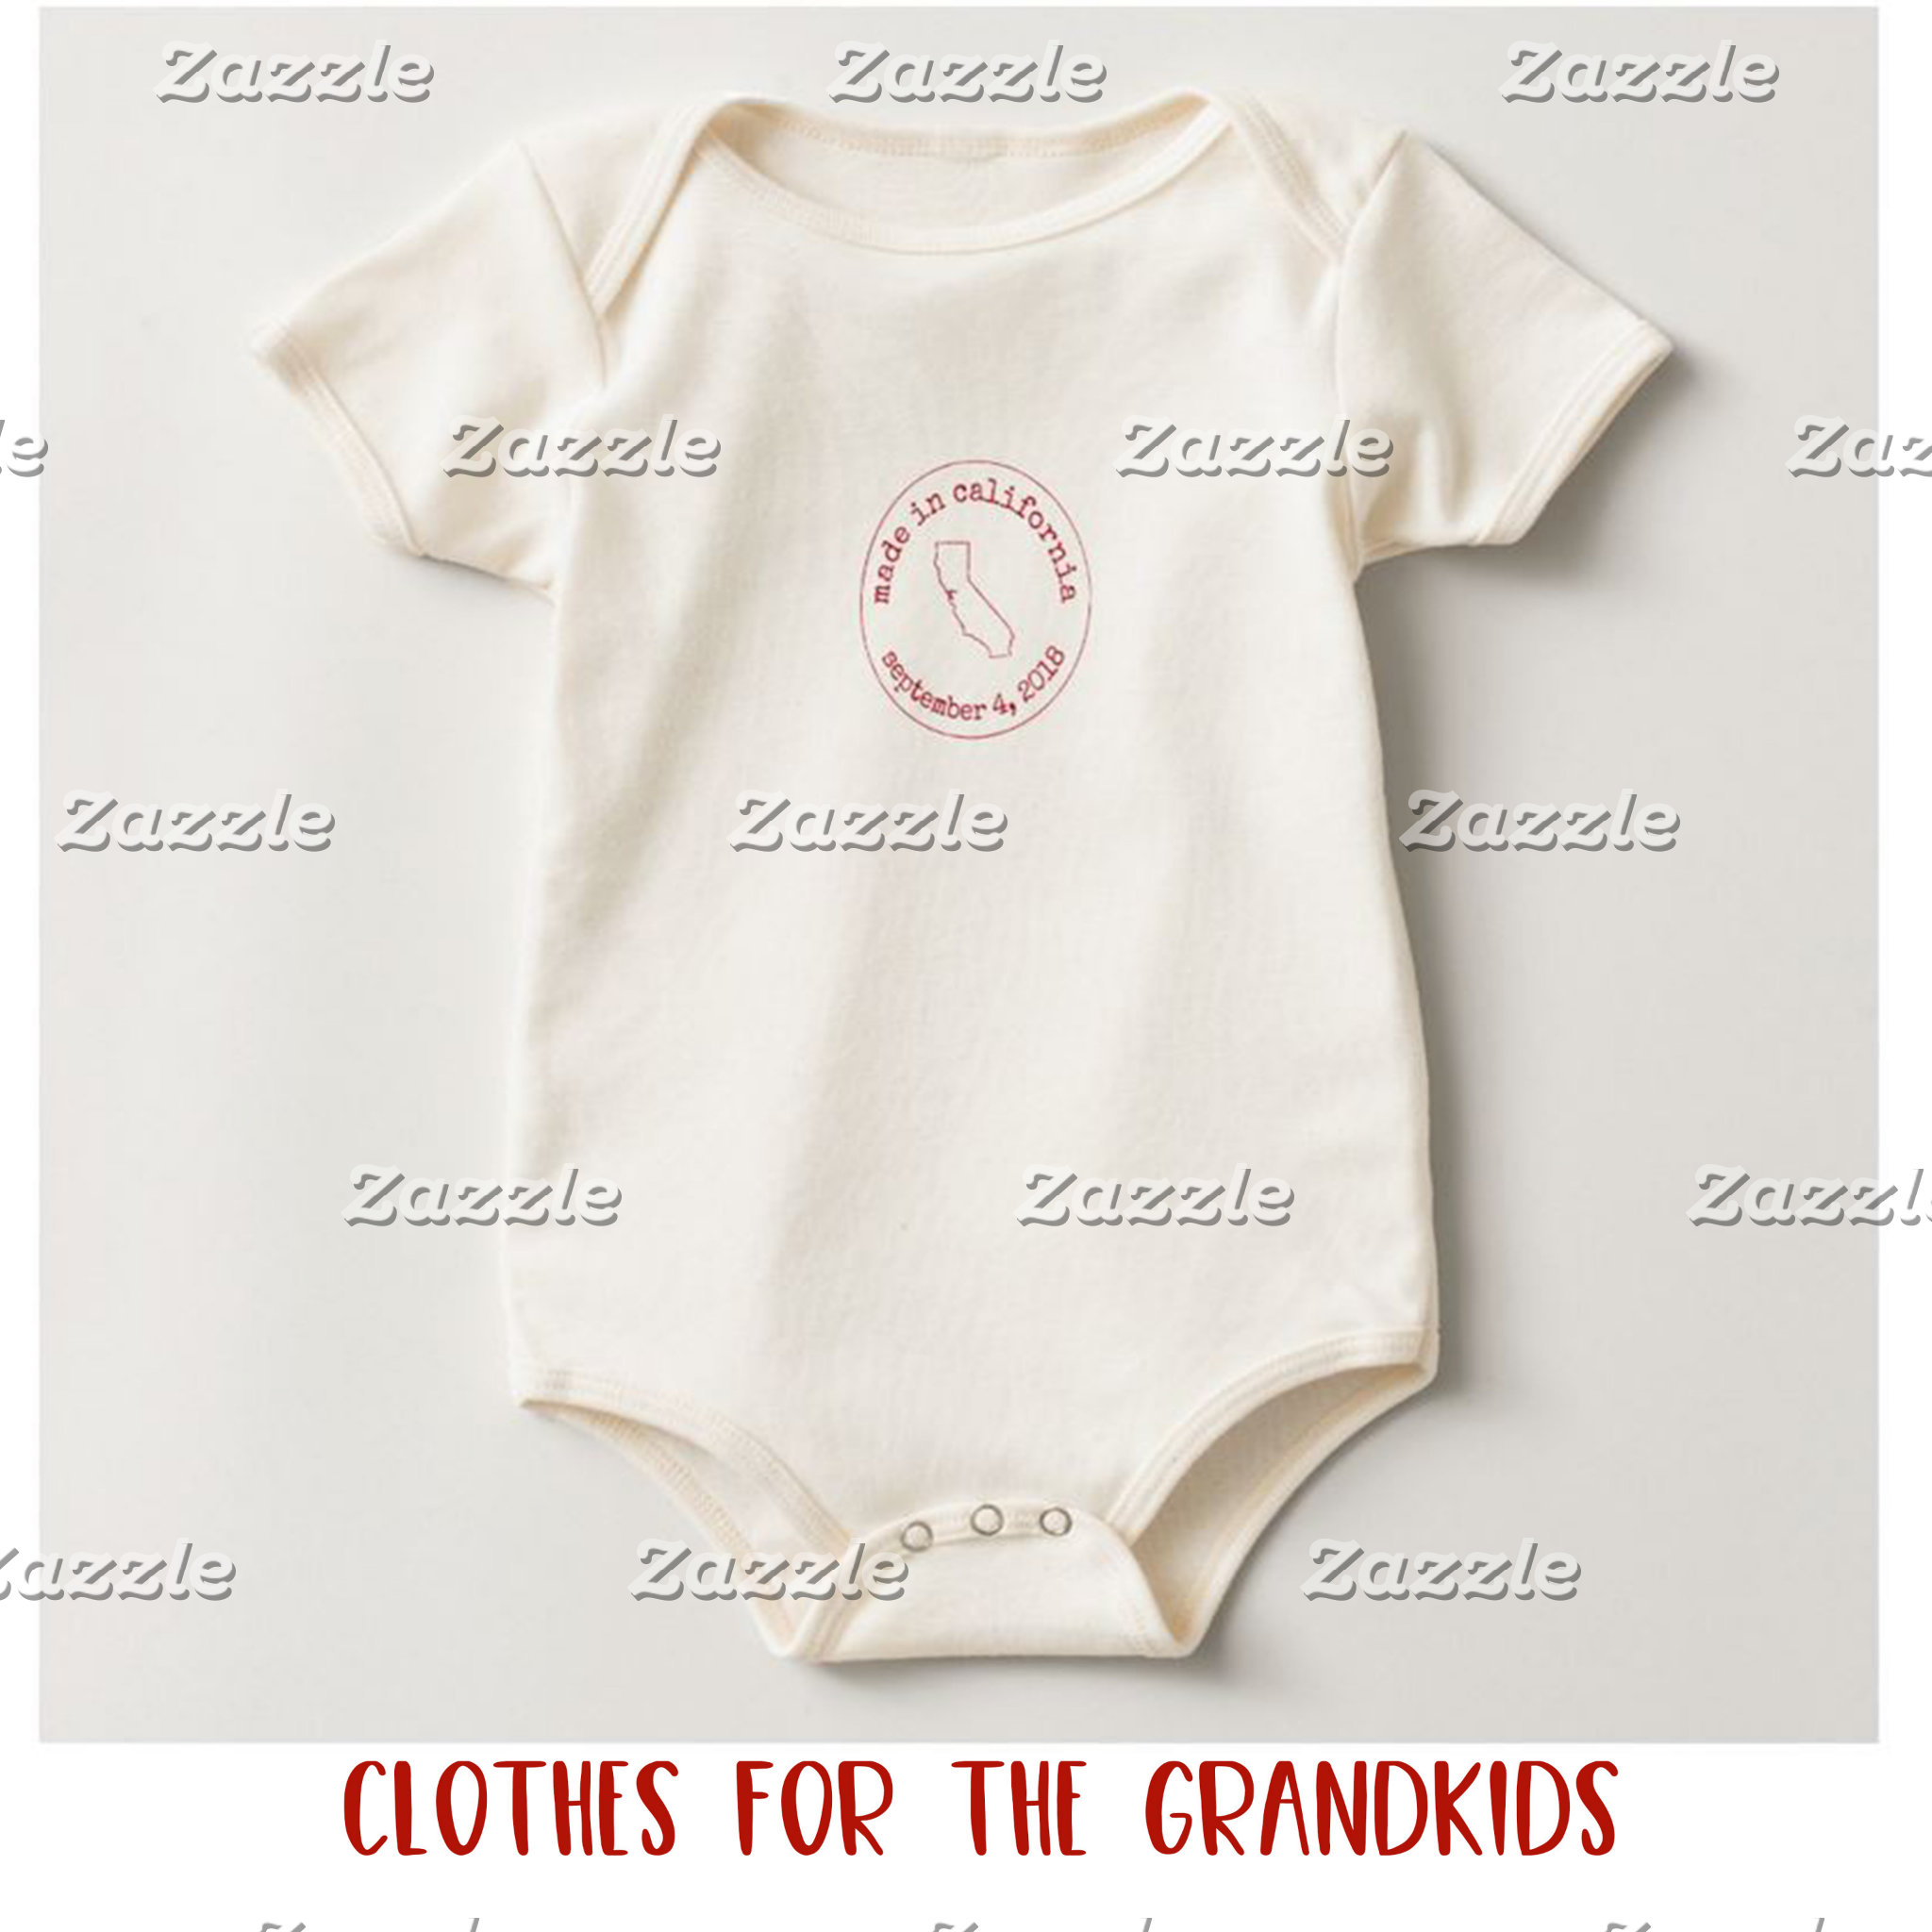 Clothes for the Grandkids